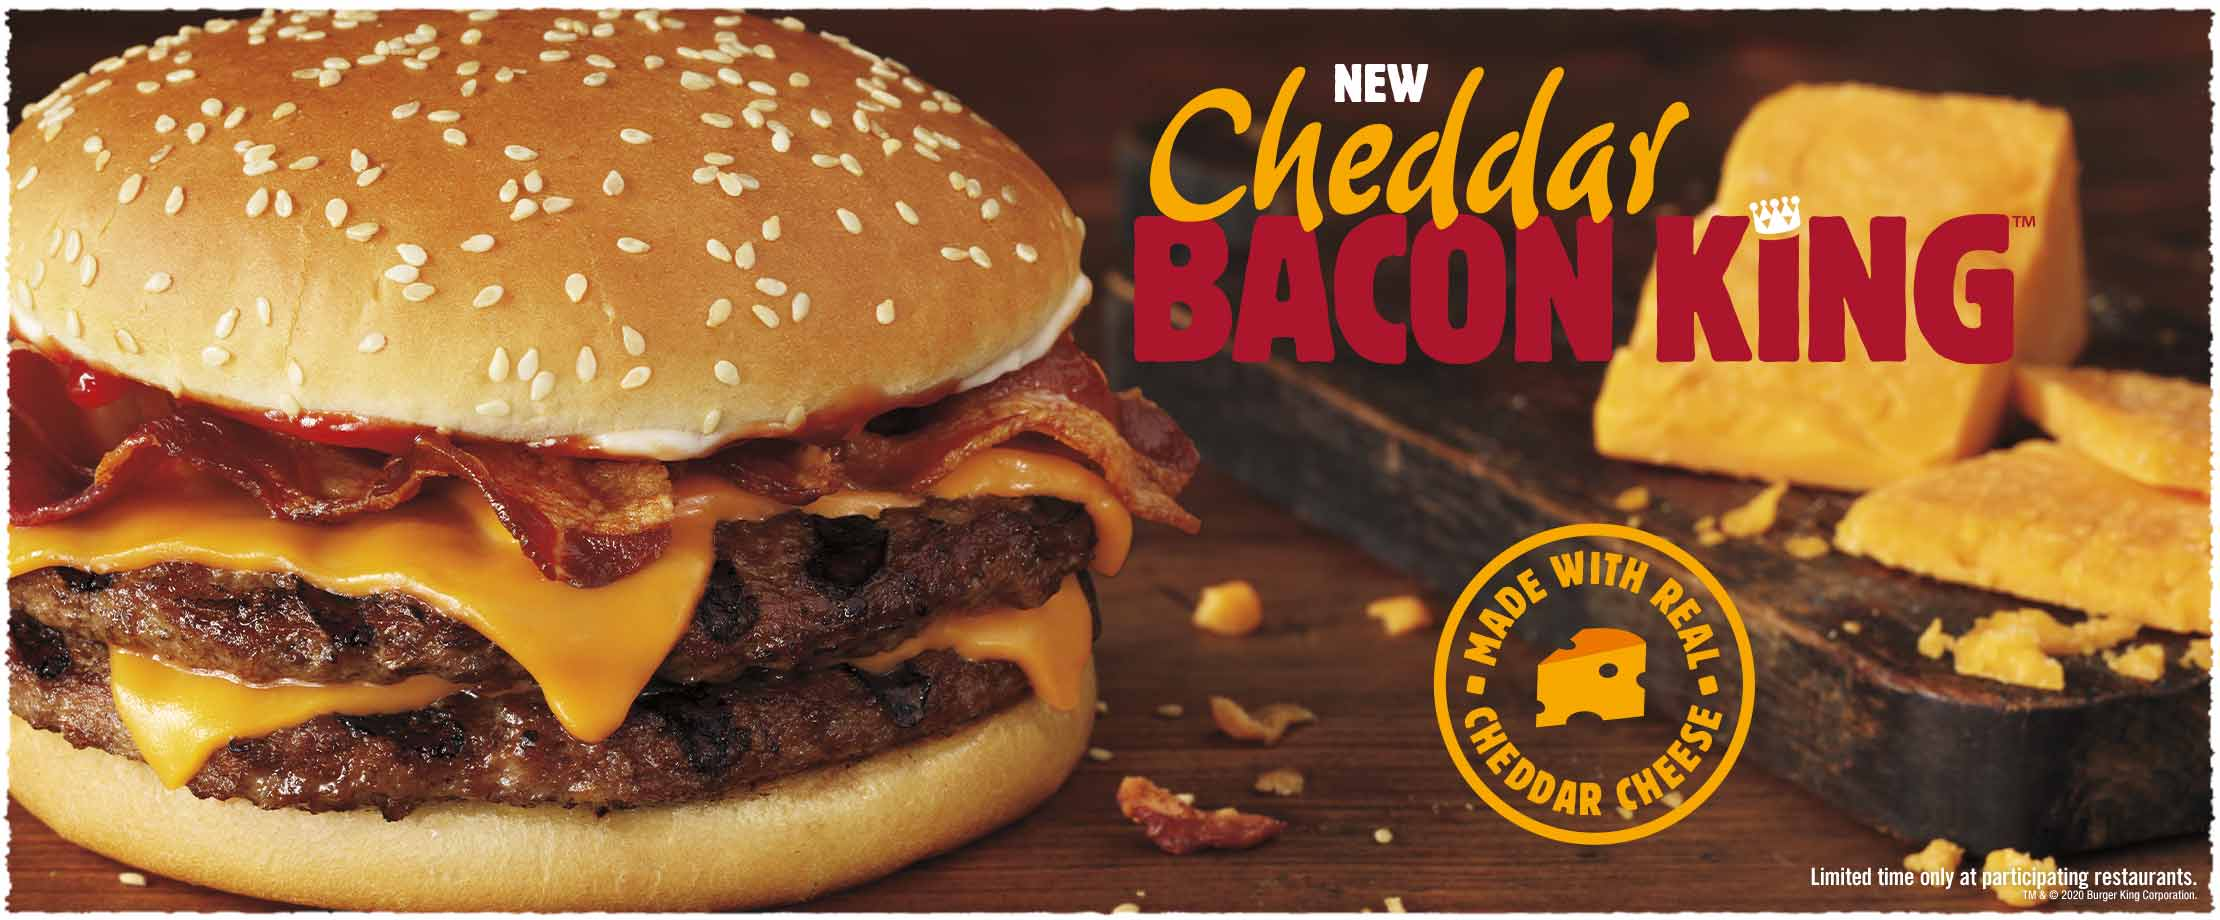 New Cheddar BACON KING™. Made with real cheddar cheese. Limited time only at participating restaurants. TM & © 2020 Burger King Corporation.